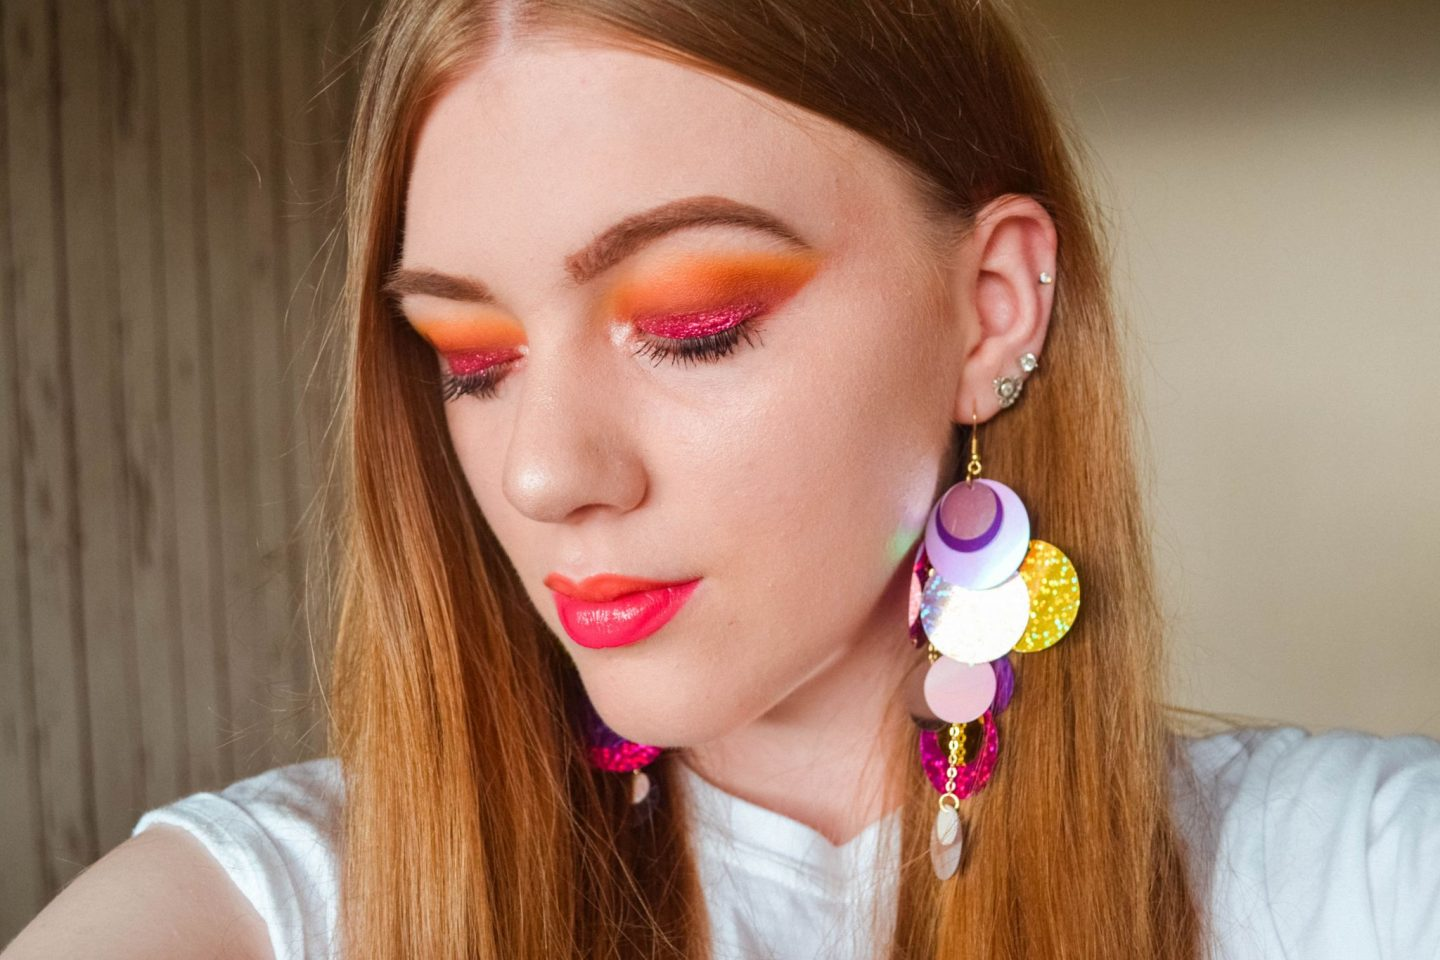 Sunset Eye and Two-Tone Lip